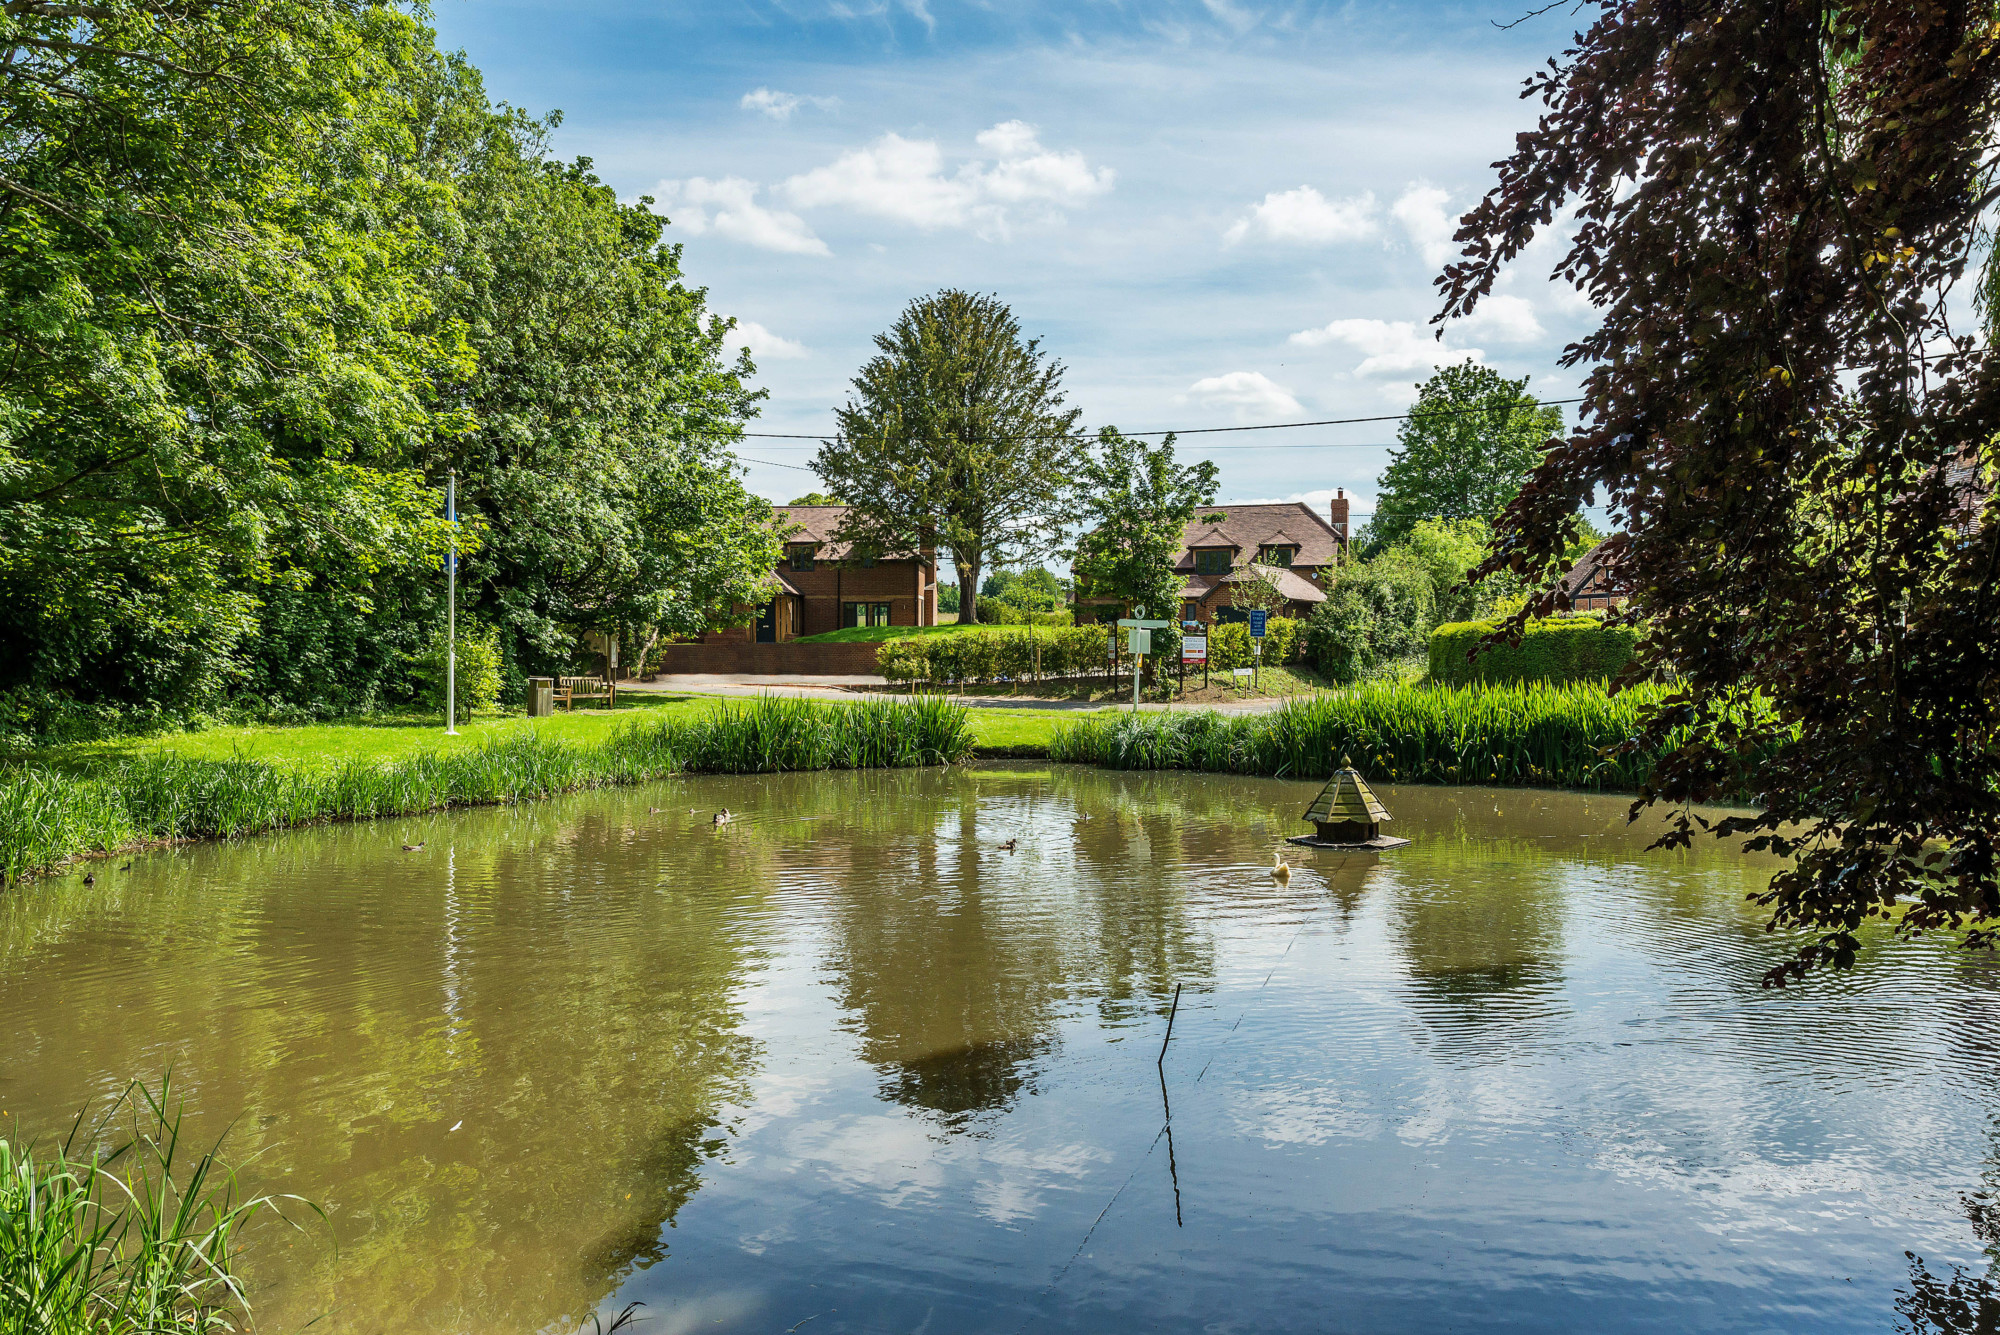 Odiham ranked as one of the top commuter villages by Homes & Property